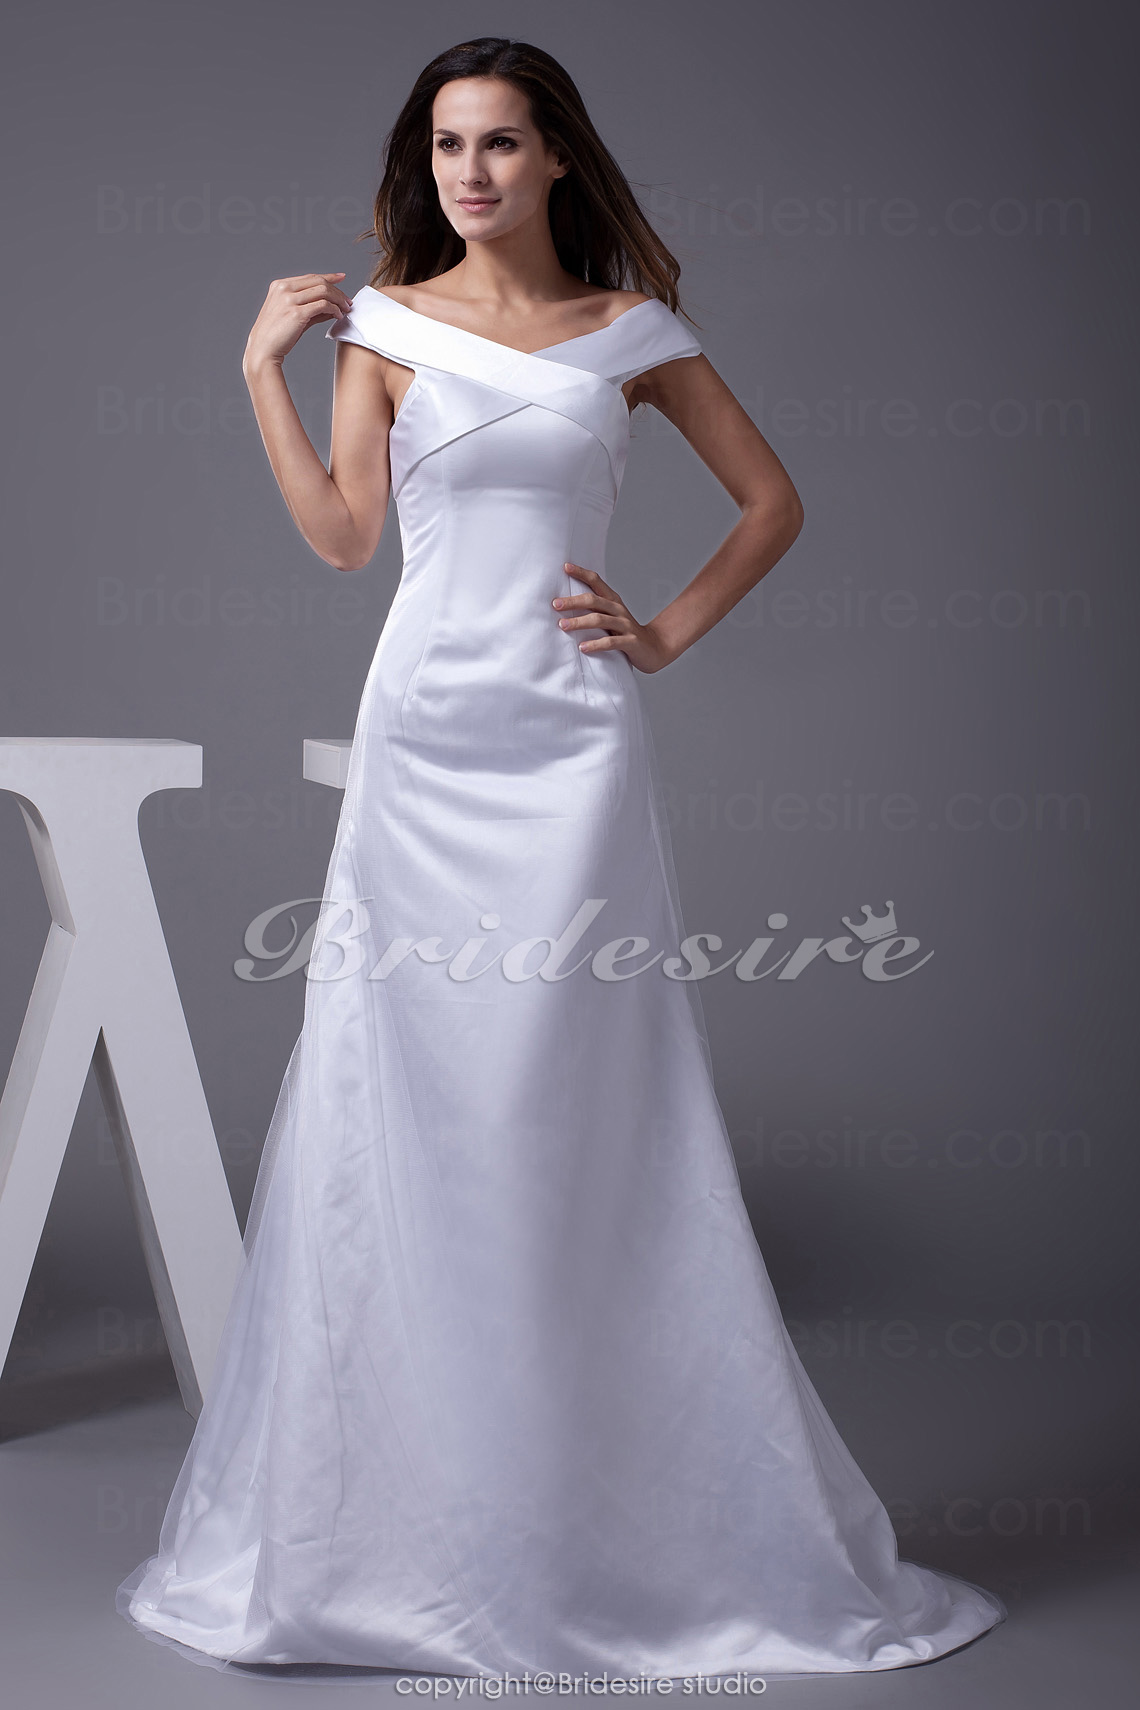 A-line Off-the-shoulder Sweep/Brush Train Sleeveless Satin Tulle Wedding Dress